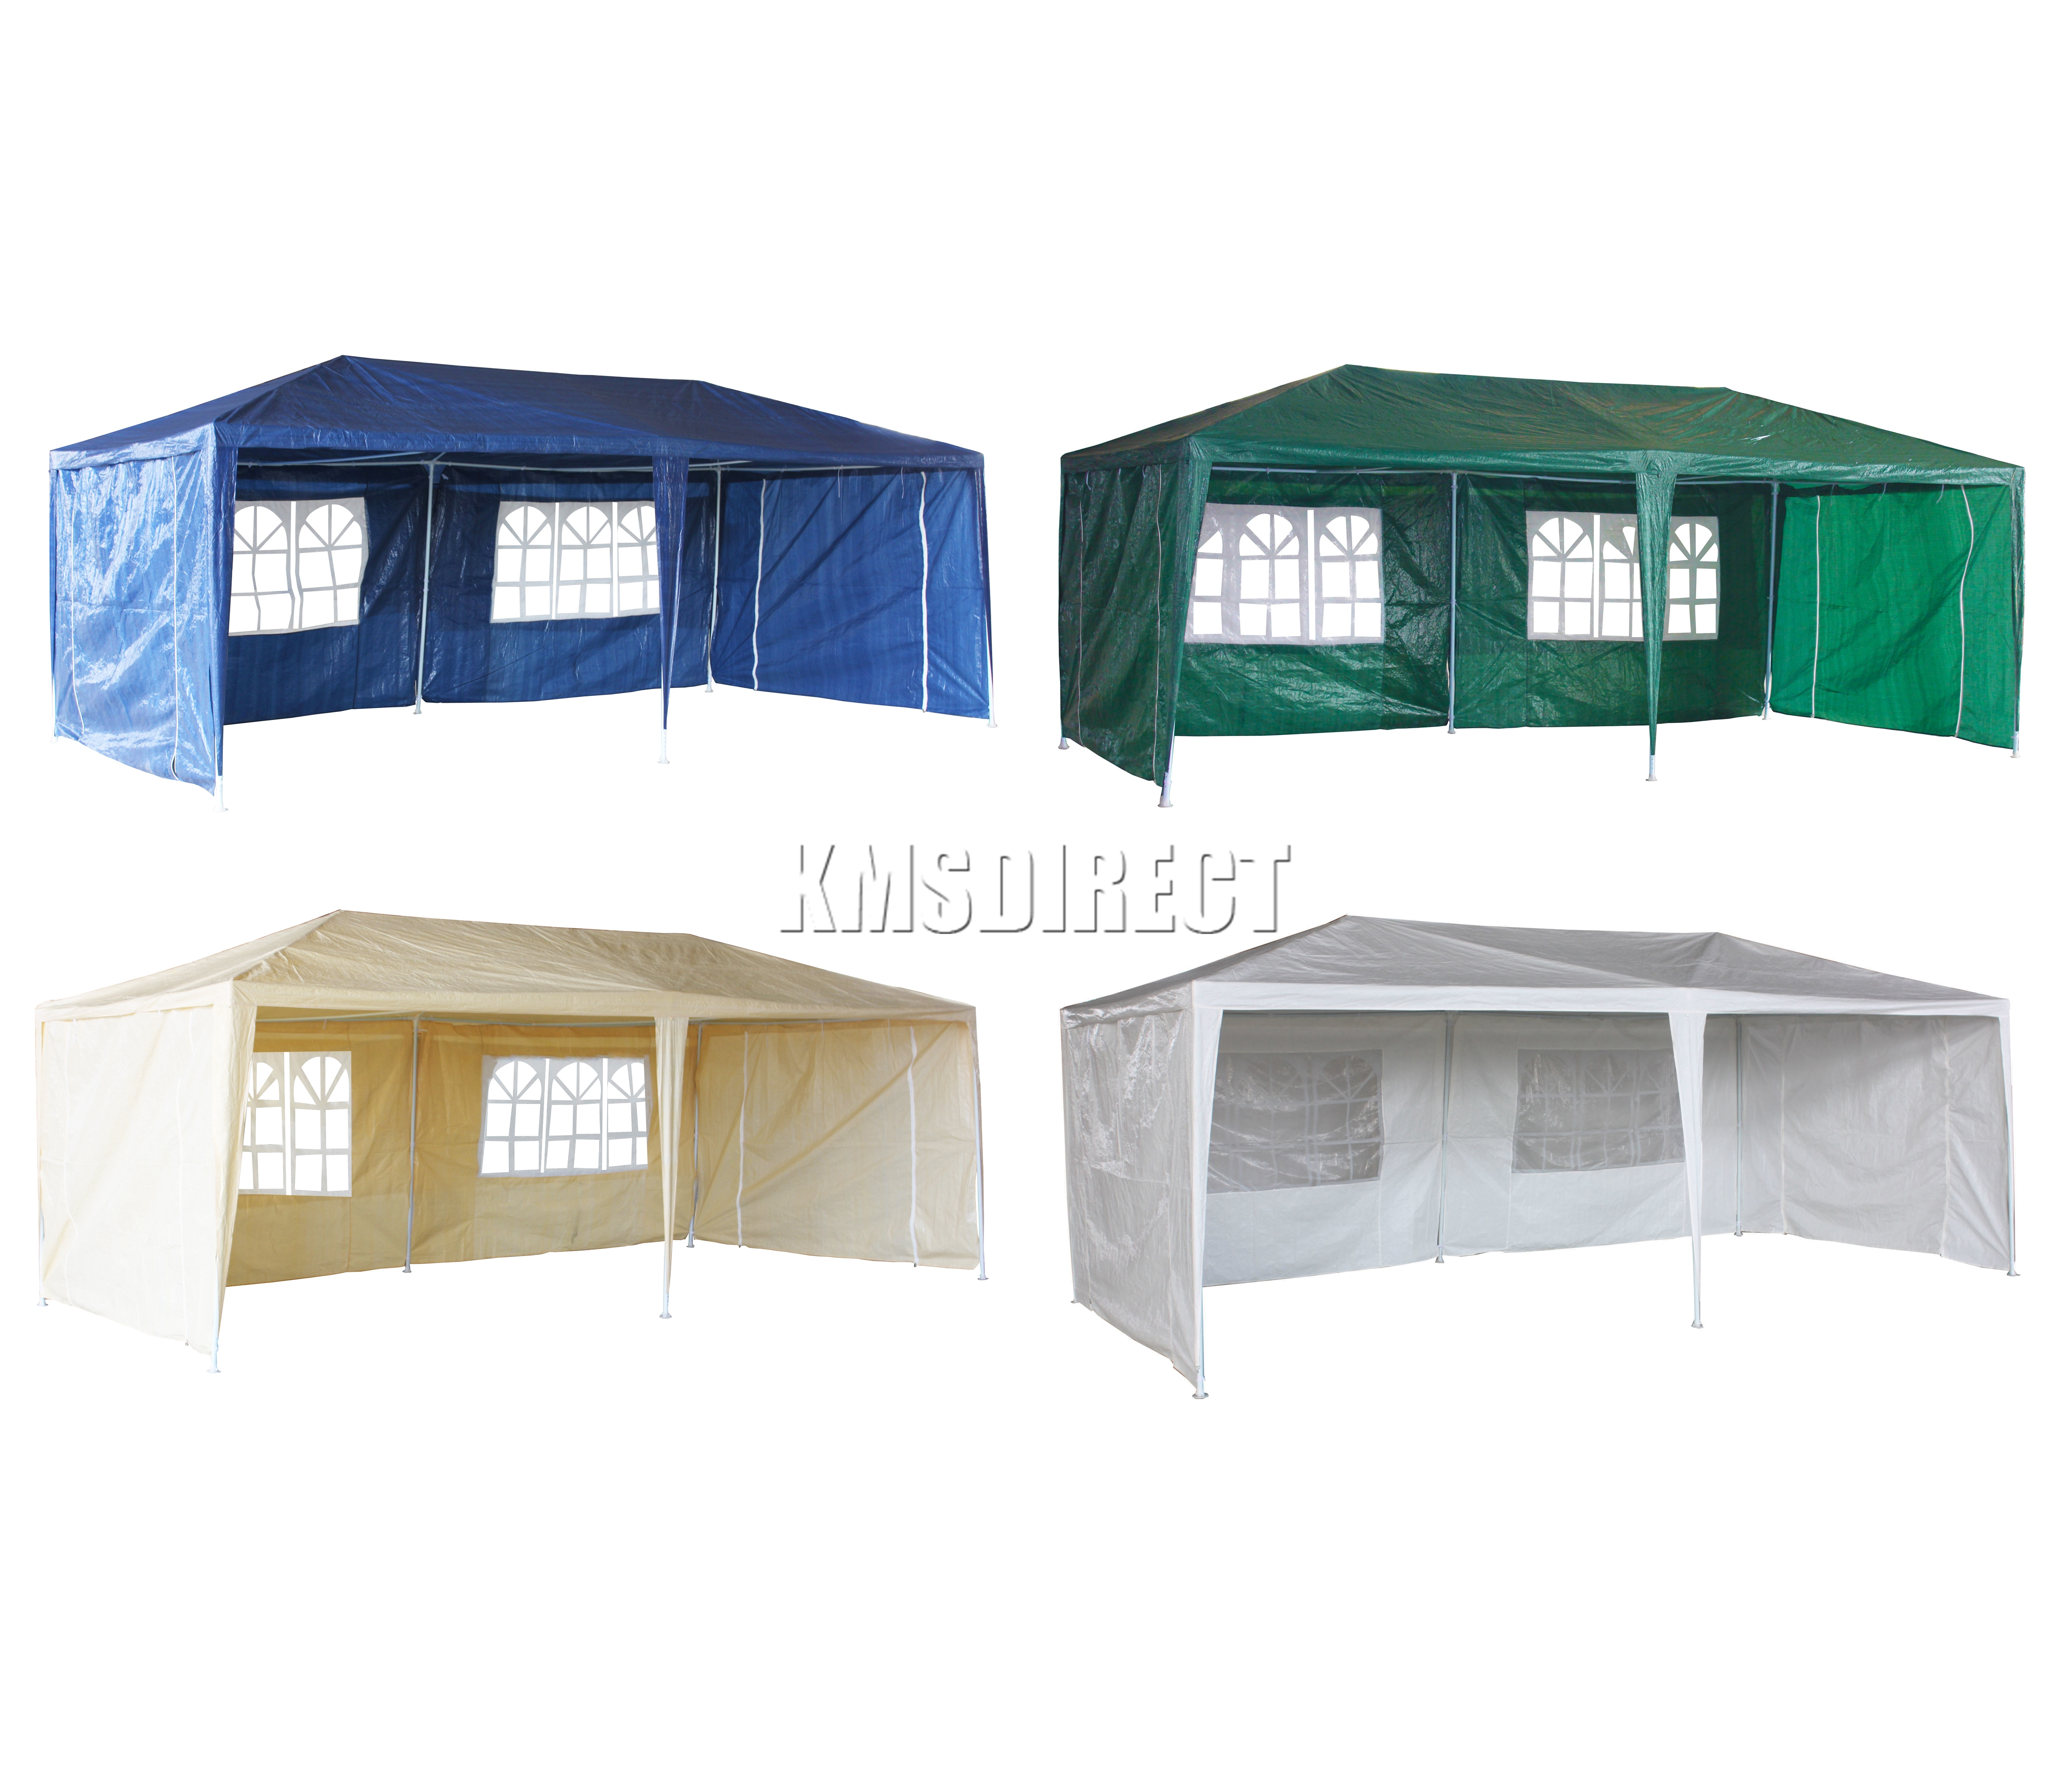 au en 3m x 3m 4m 6m 9m 120g wasserdicht pe gartenlaube garten markise ebay. Black Bedroom Furniture Sets. Home Design Ideas